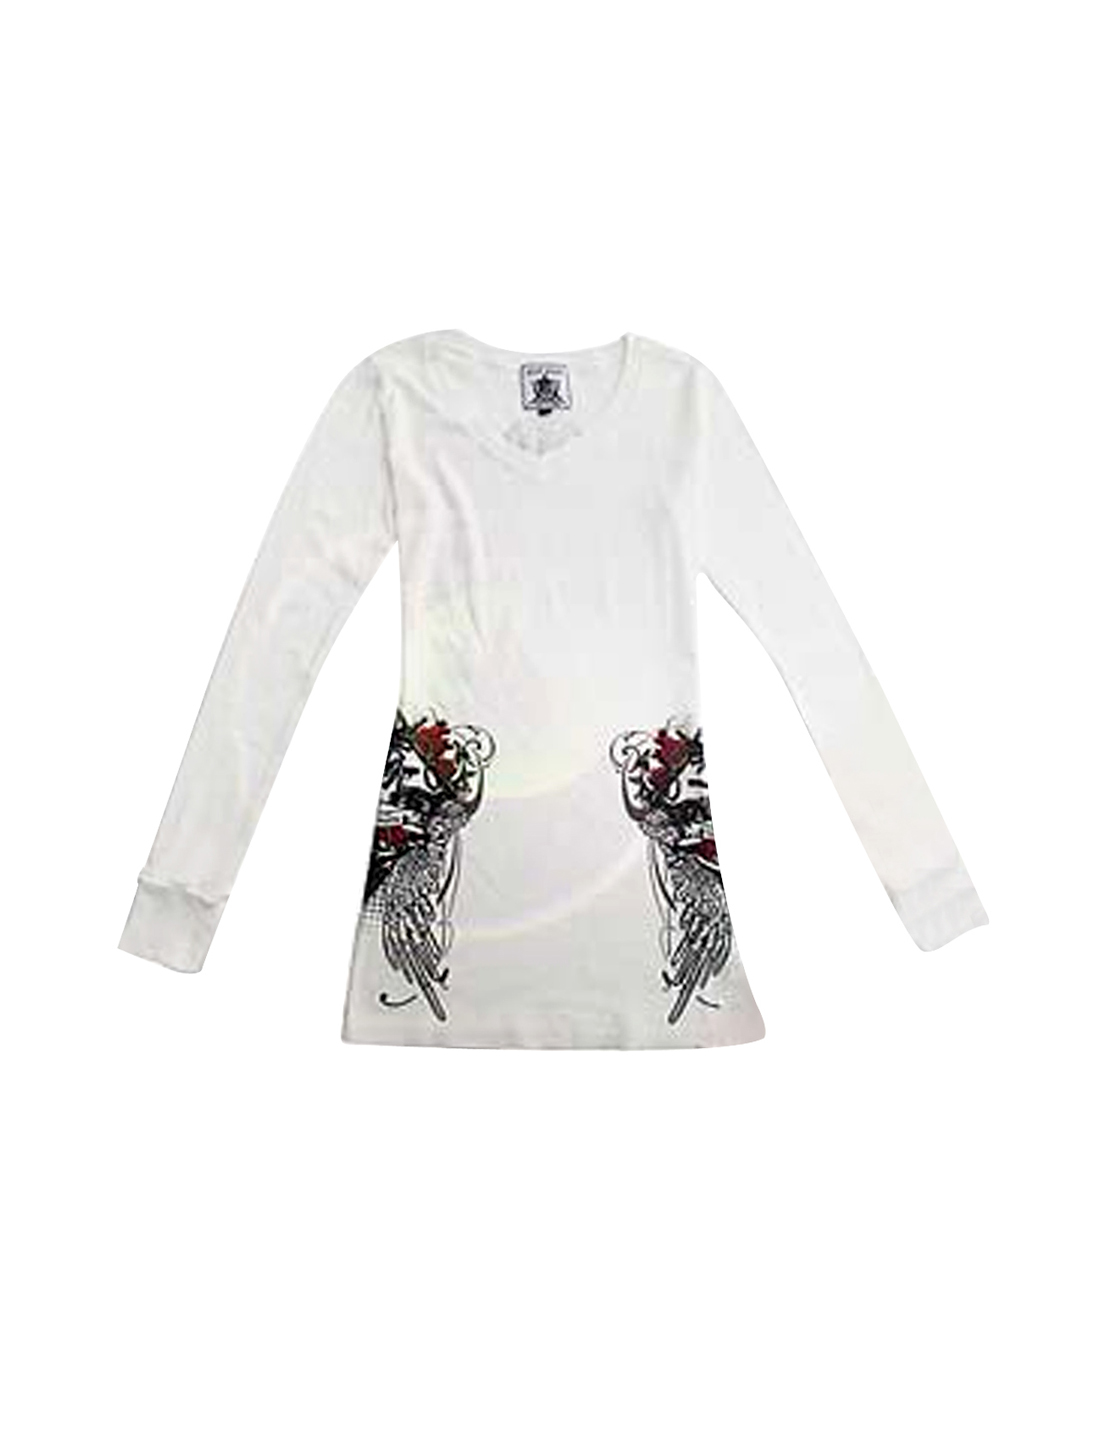 Woman V Neck Rhinestud Anchor Print Long Sleeve Shirt Top White XS